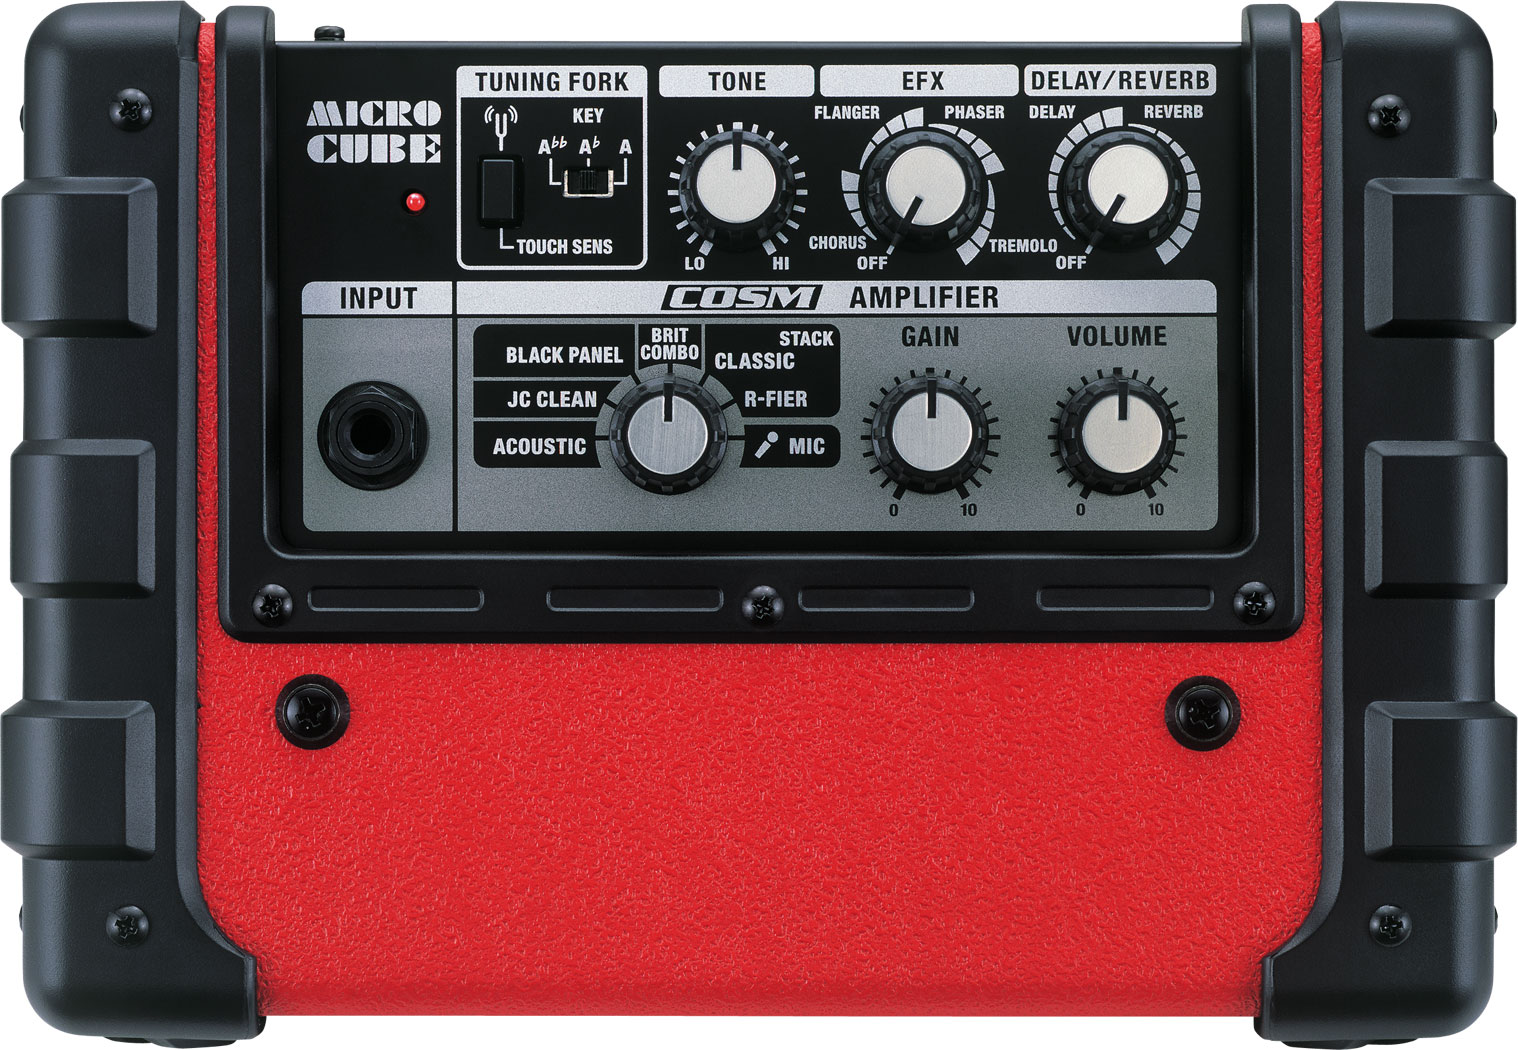 roland micro cube r limited edition guitar amplifier. Black Bedroom Furniture Sets. Home Design Ideas